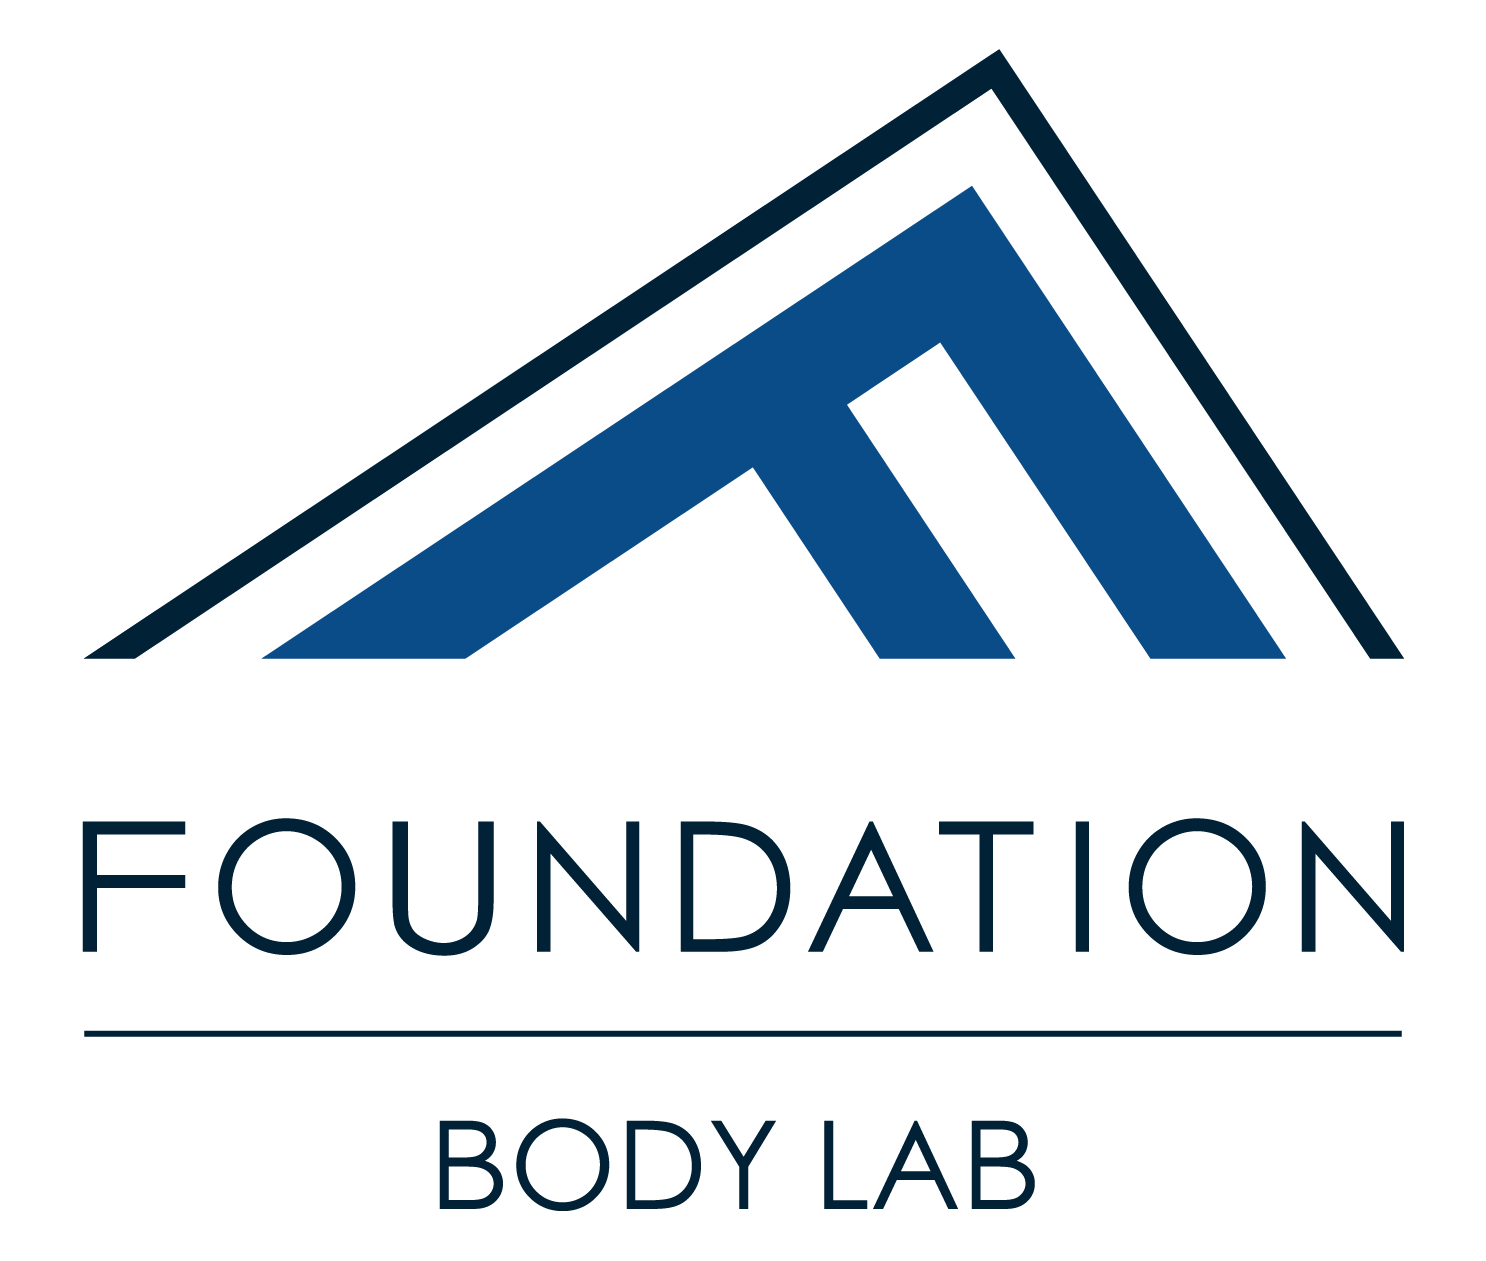 Foundation Body Lab